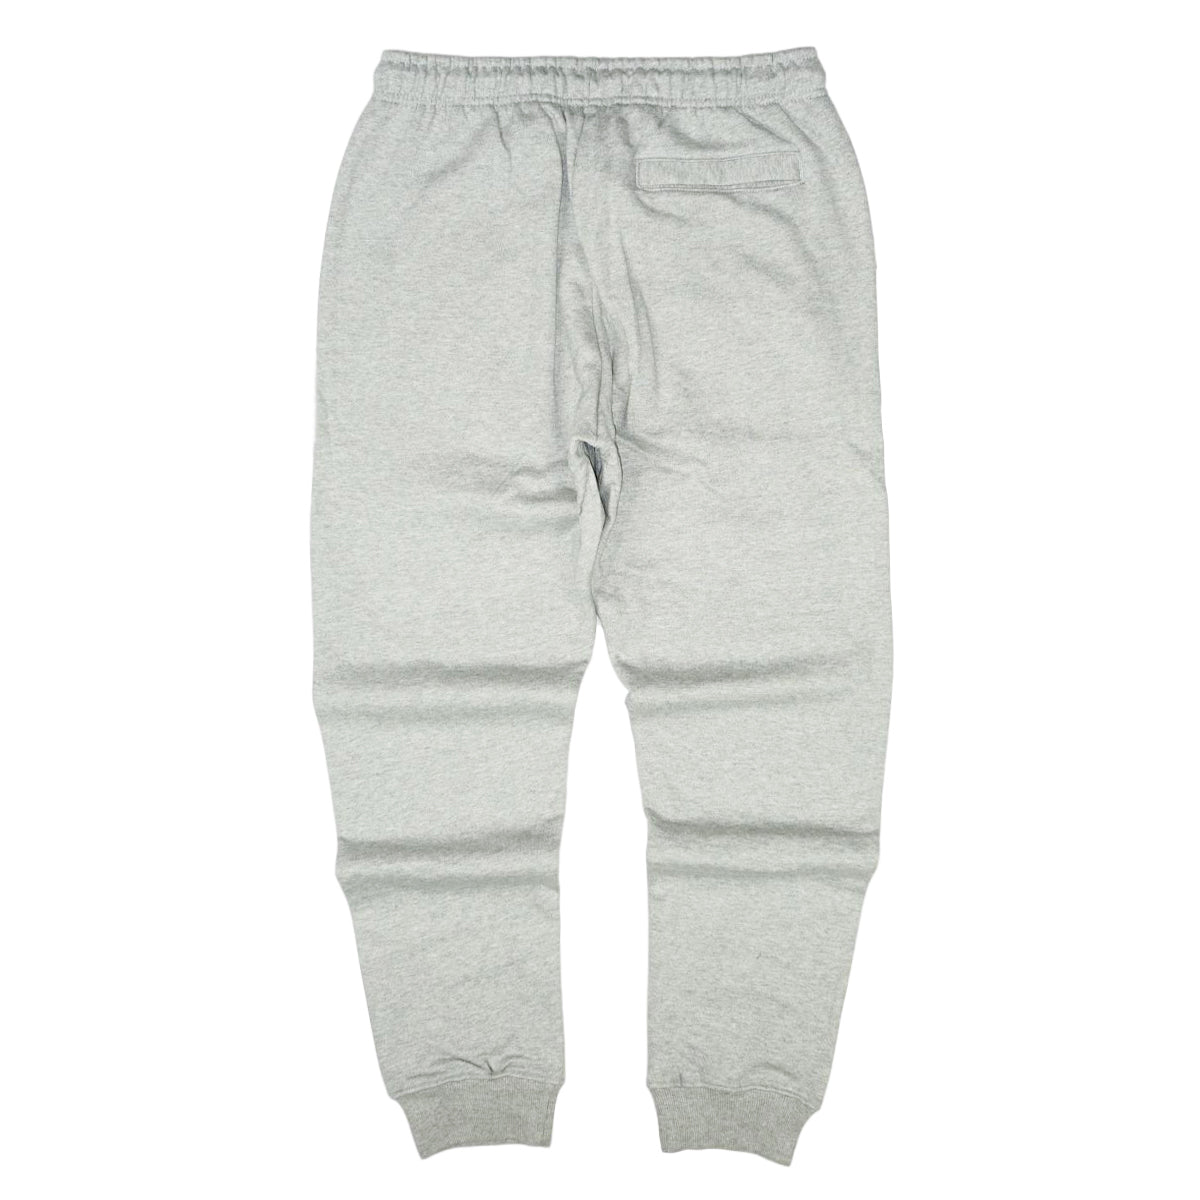 Tear Dripping Jogger Set (Heather Grey)/D16